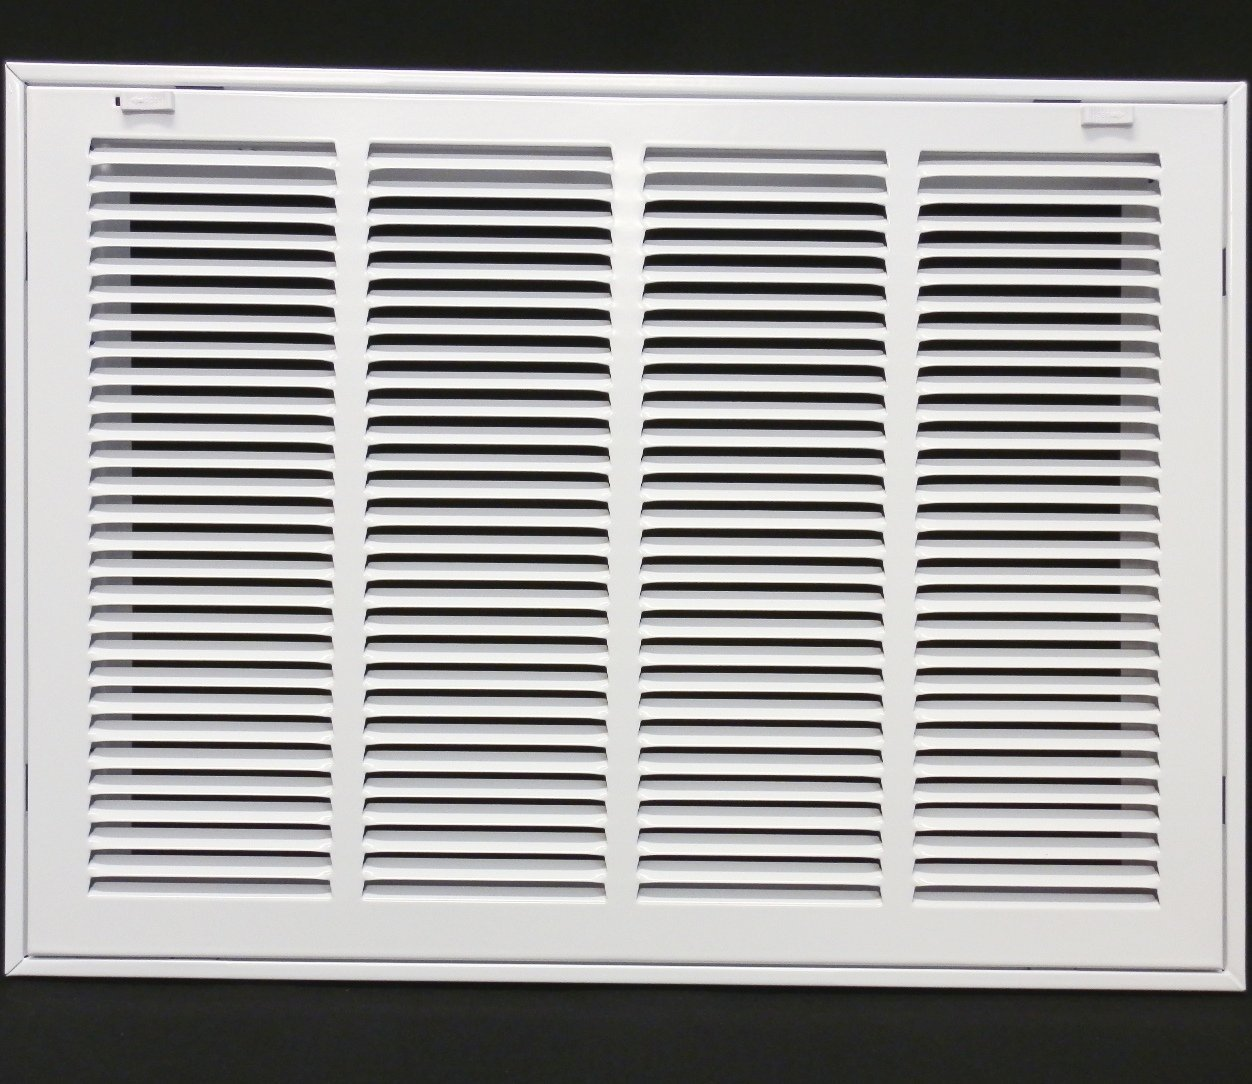 "20"" X 16 Steel Return Air Filter Grille for 1"" Filter - Removable Face/Door - HVAC DUCT COVER - Flat Stamped Face - White [Outer Dimensions: 22.5""w X 18.5""h]"